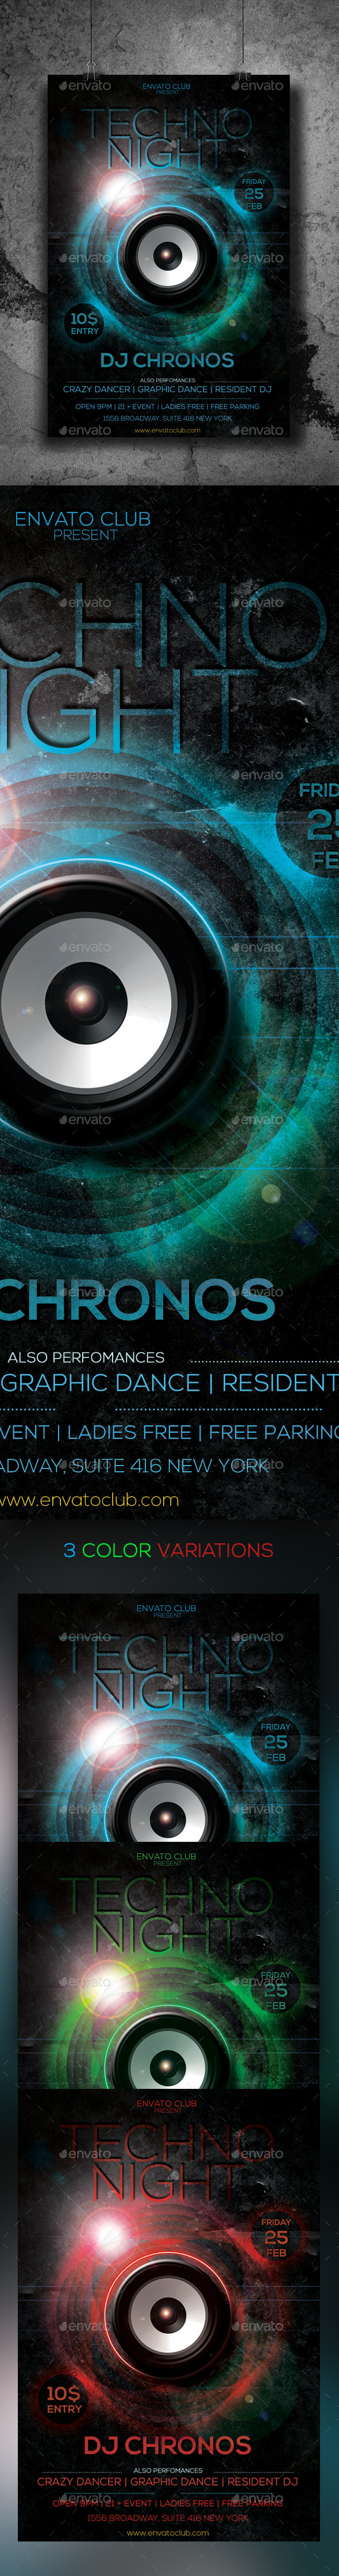 Techno Night Flyer - Clubs & Parties Events